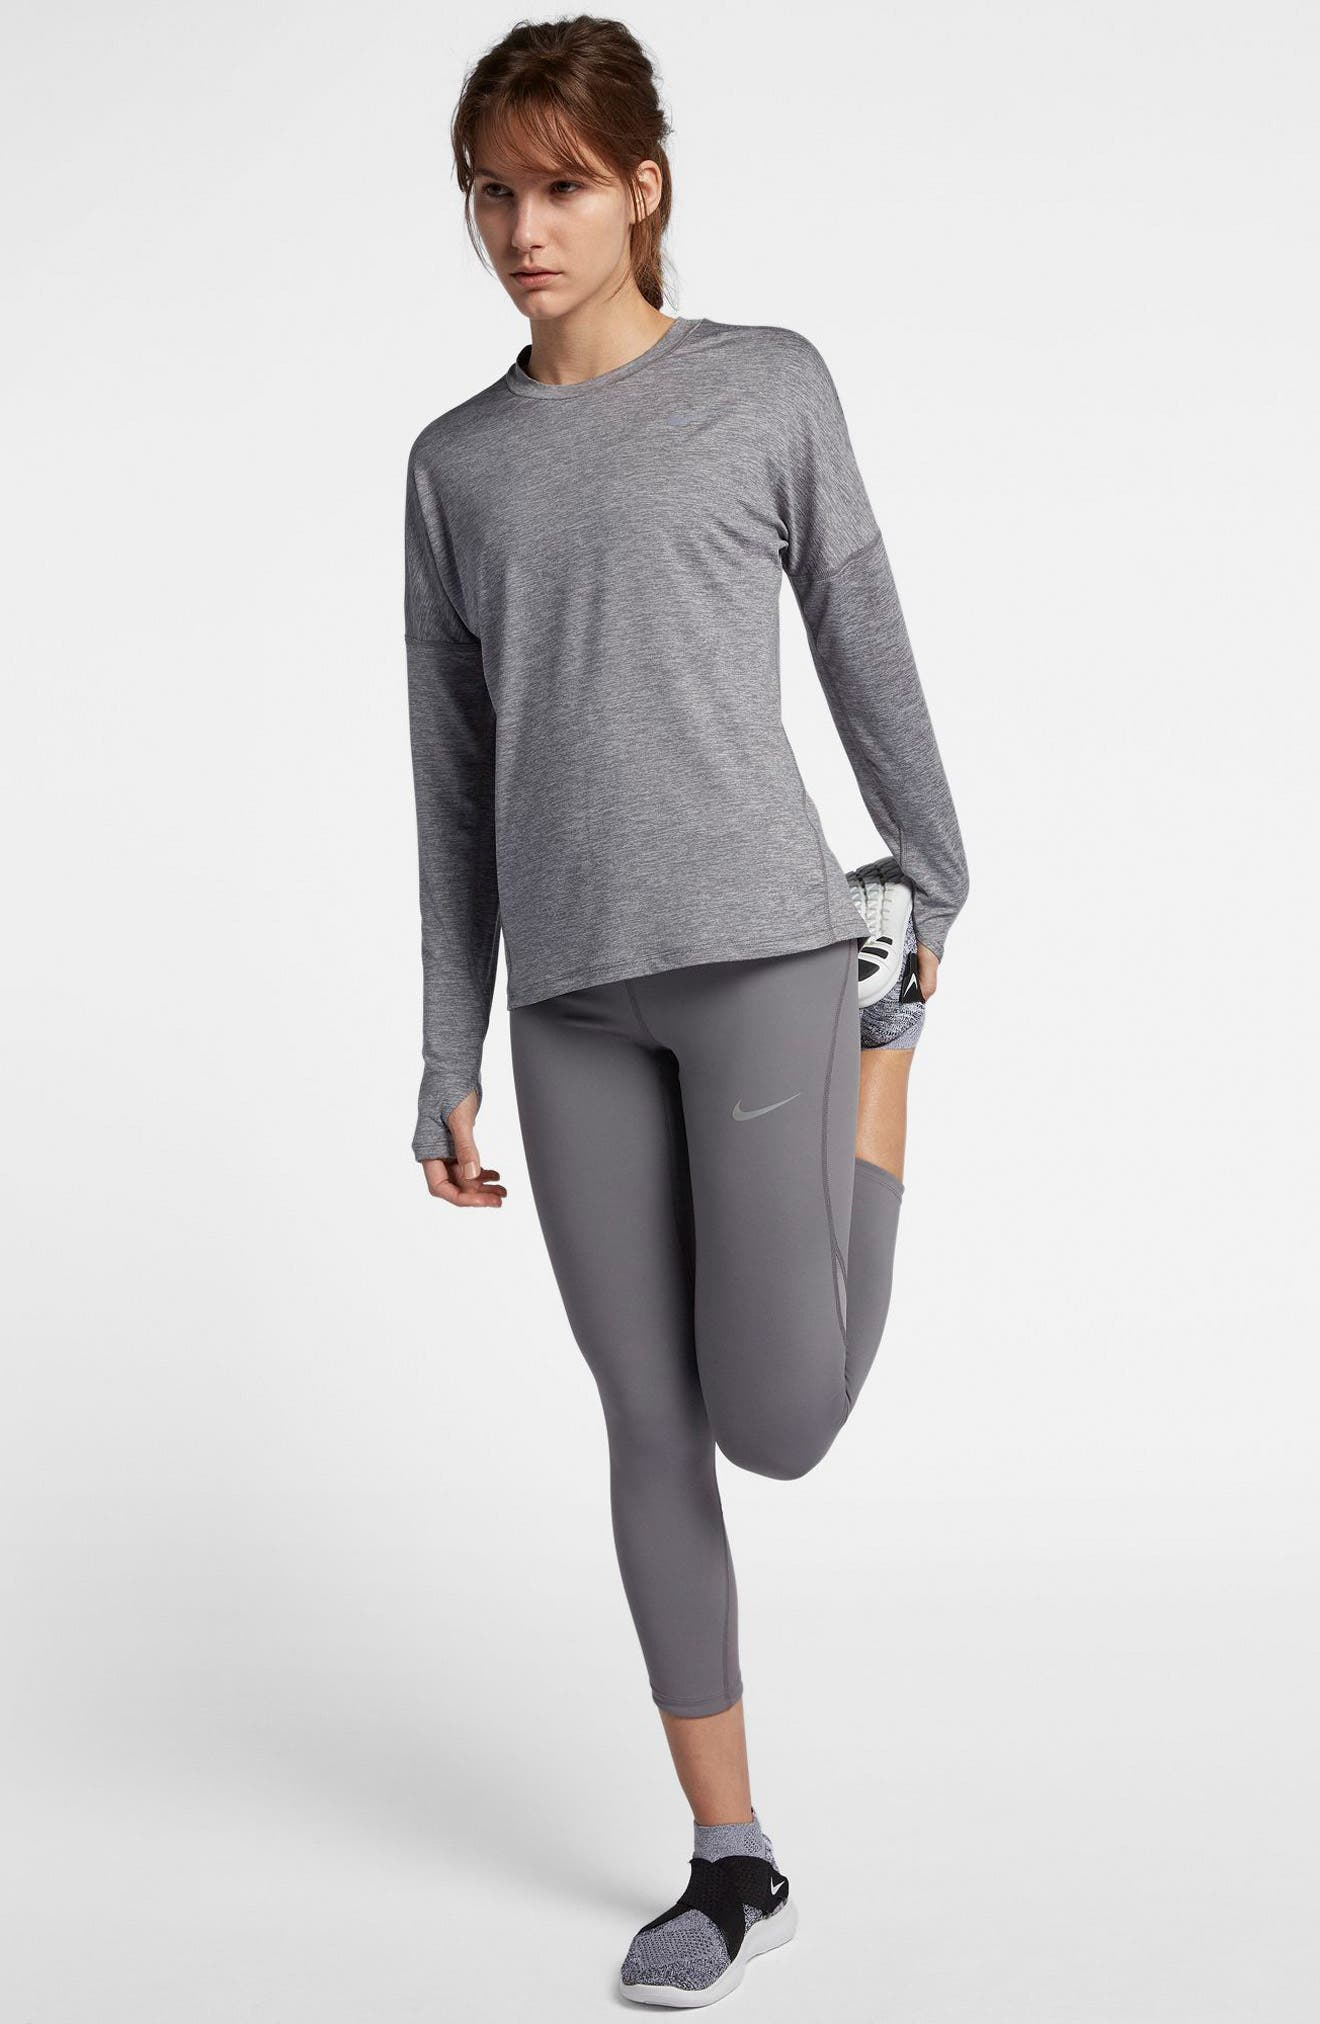 NIKE,                             Dry Element Long Sleeve Top,                             Alternate thumbnail 10, color,                             036